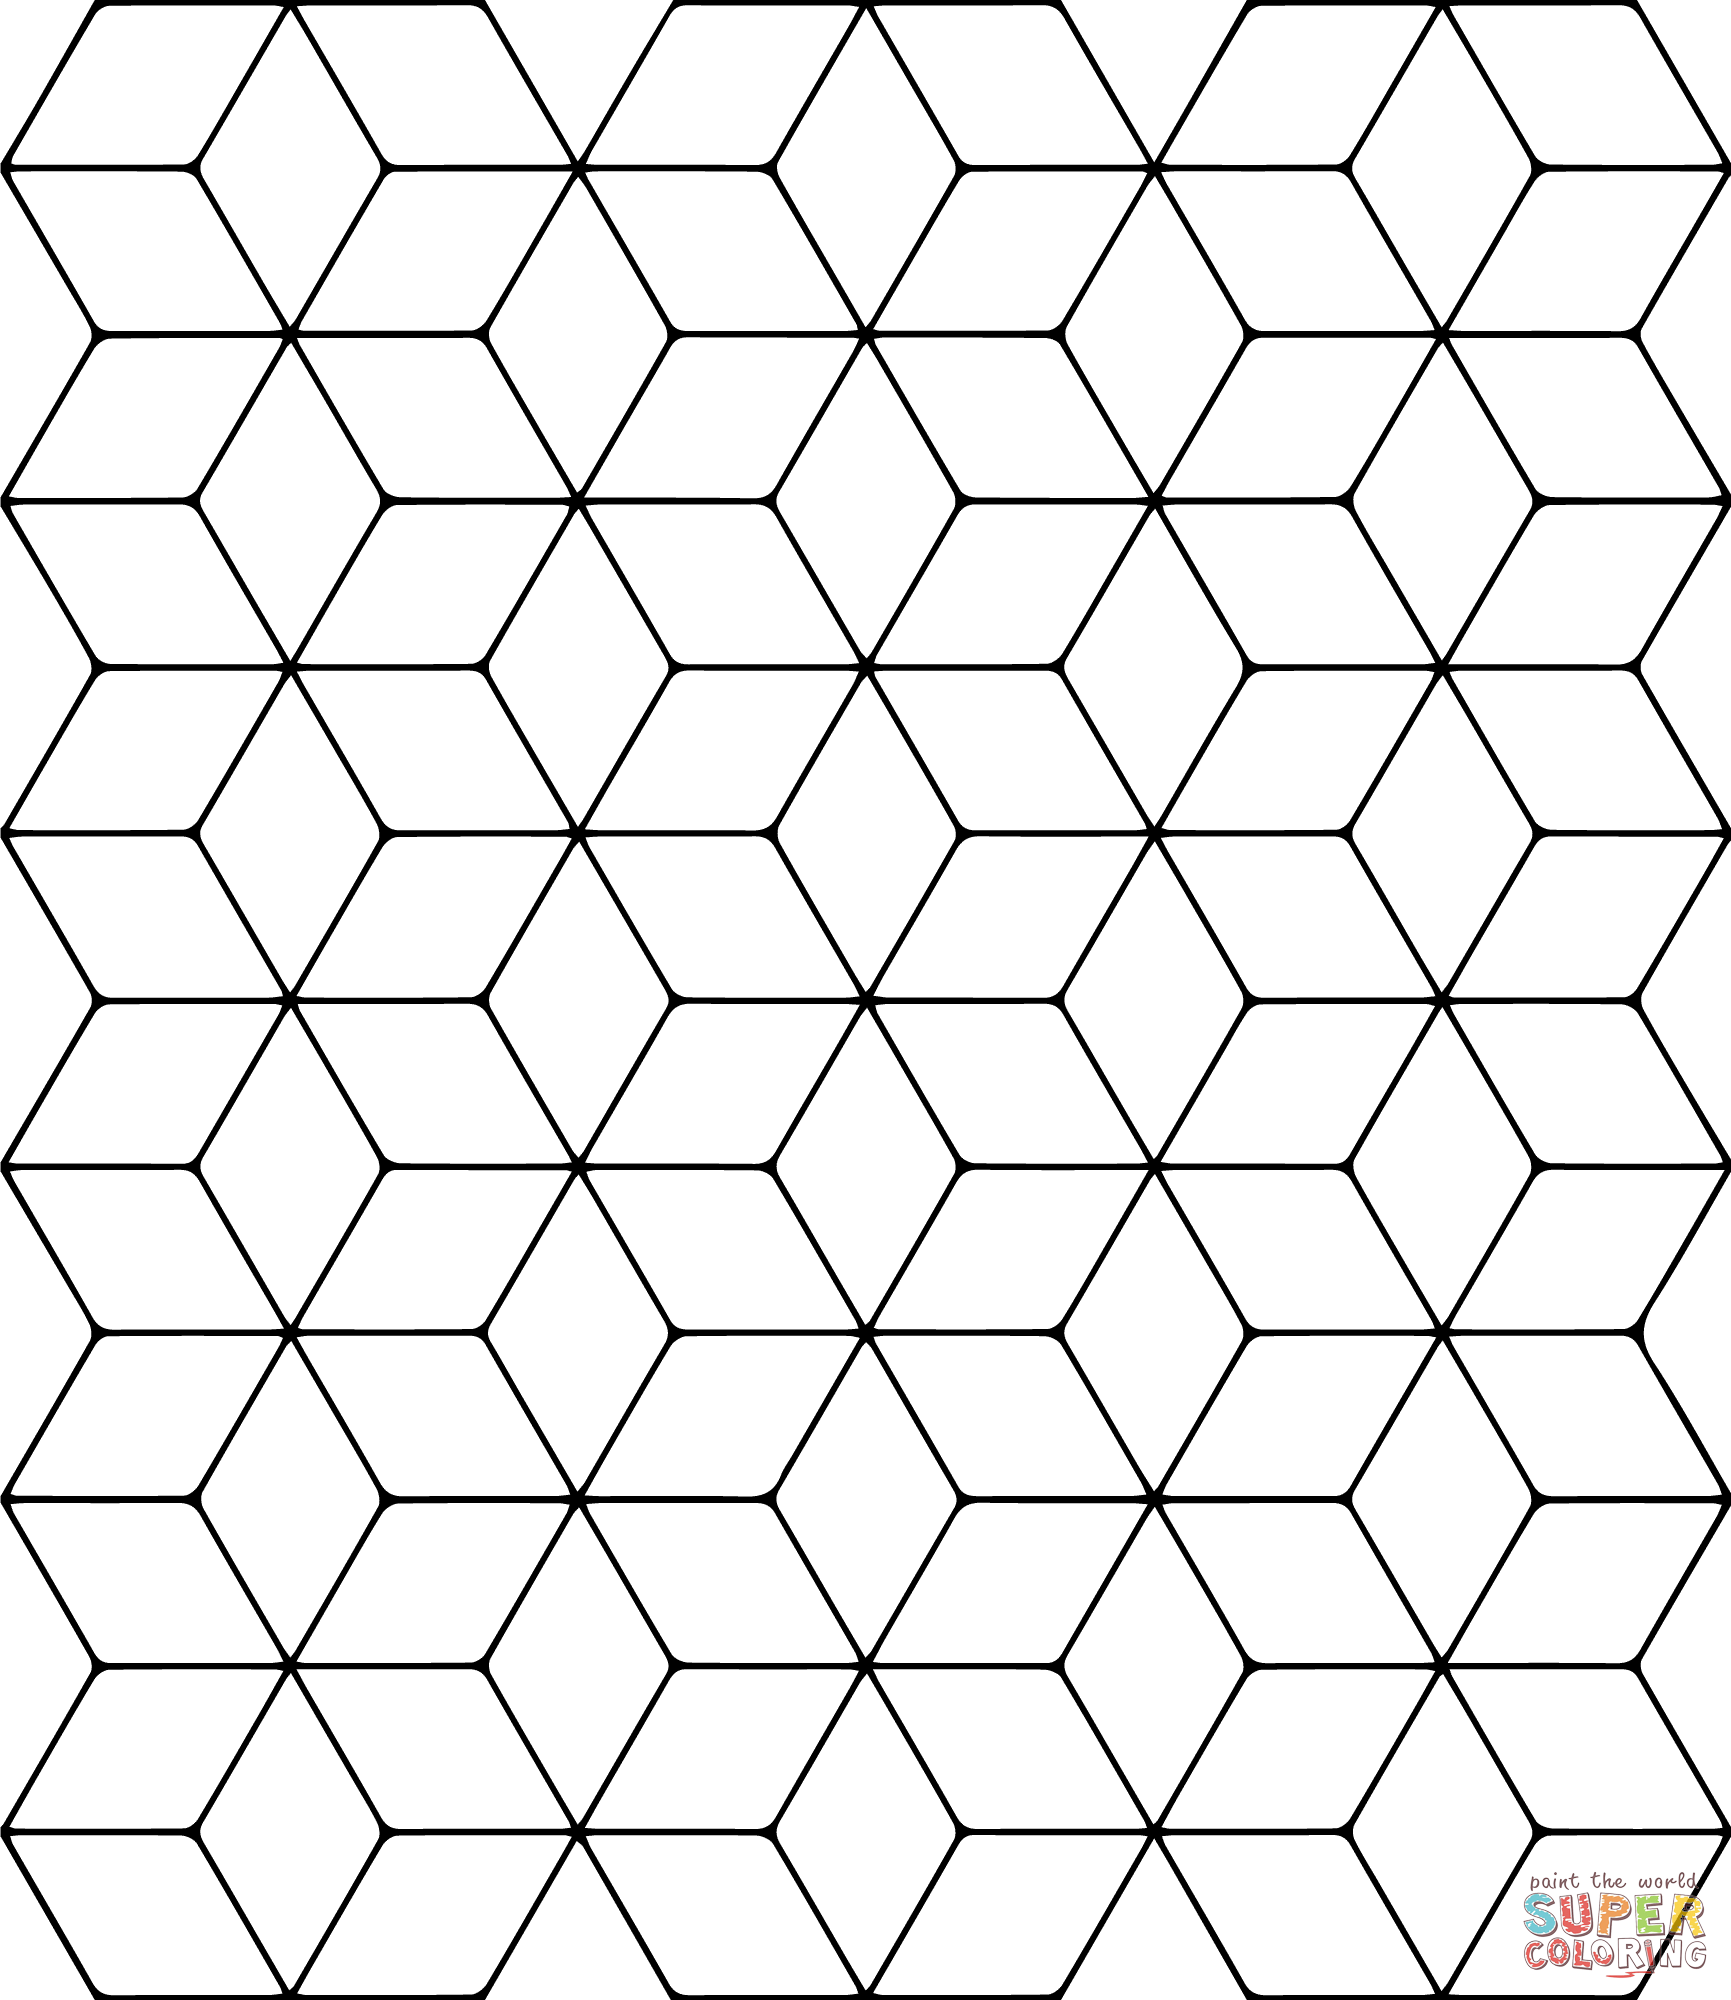 tessellations coloring pages tessellations coloring pages tessellation patterns coloring pages tessellations